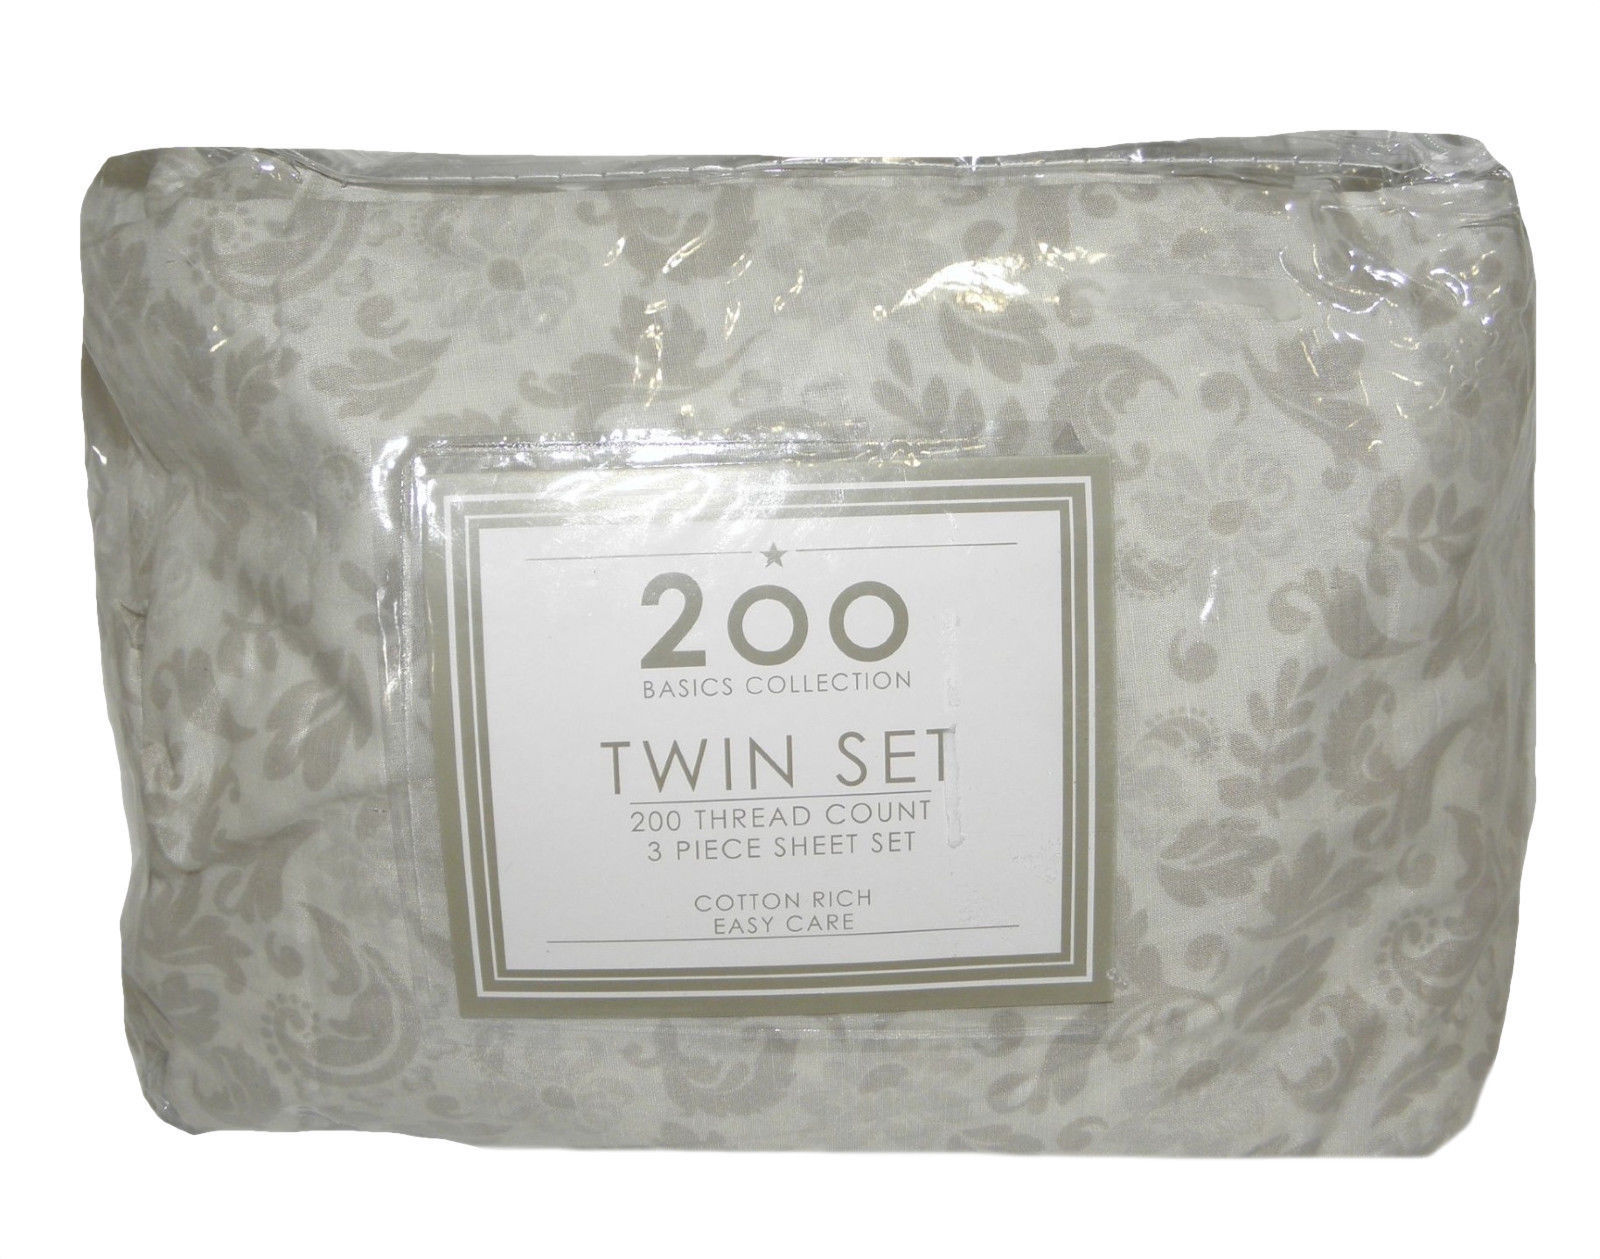 NEW 3 PIECE TWIN SHEET SET 200 THREAD COUNT BASICS COLLECTION ~ TOSCA TAUPE ~